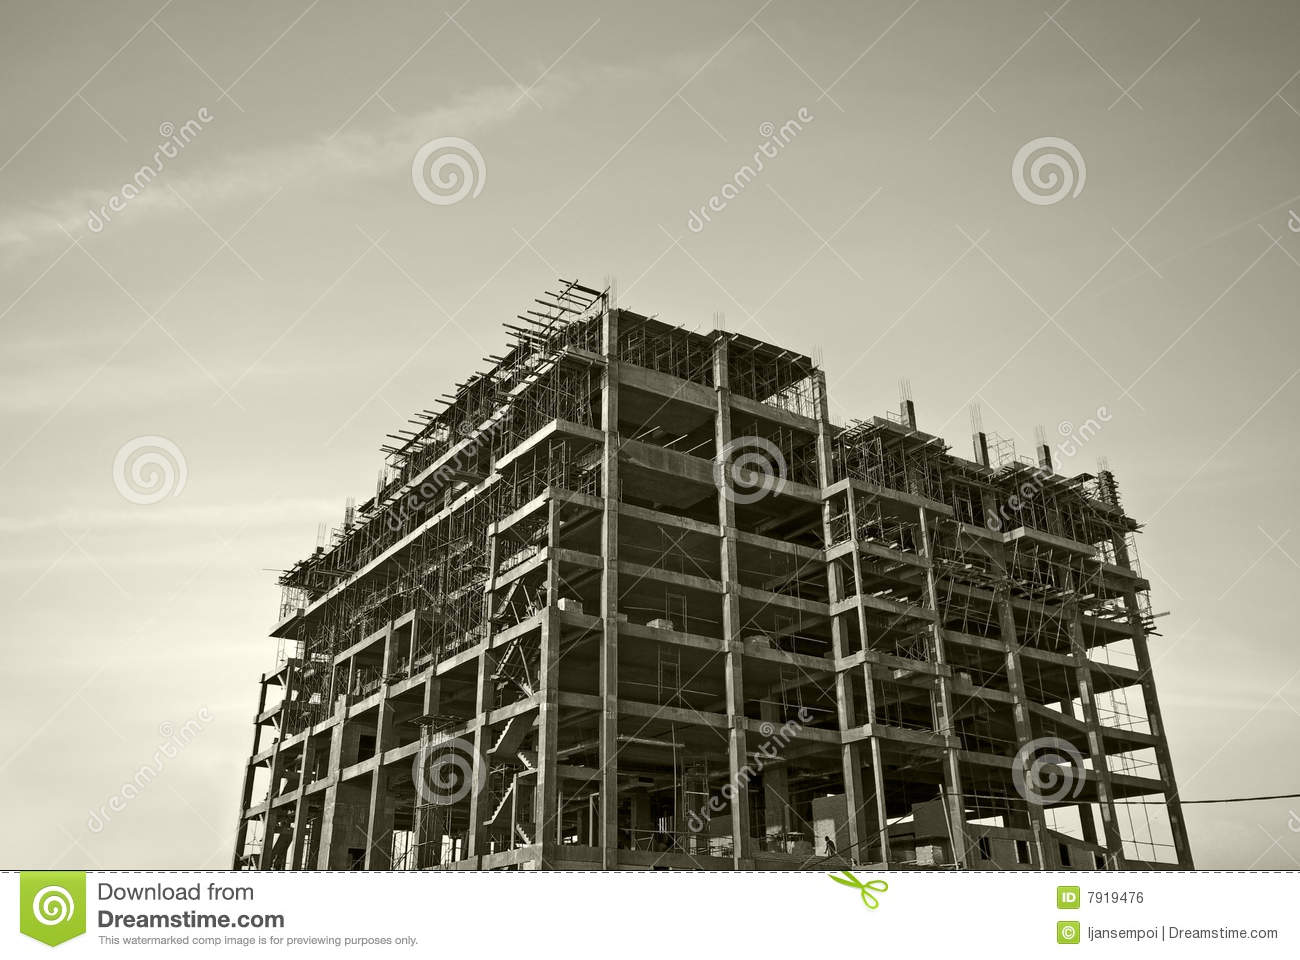 Building structure stock photo. Image of white, building ...